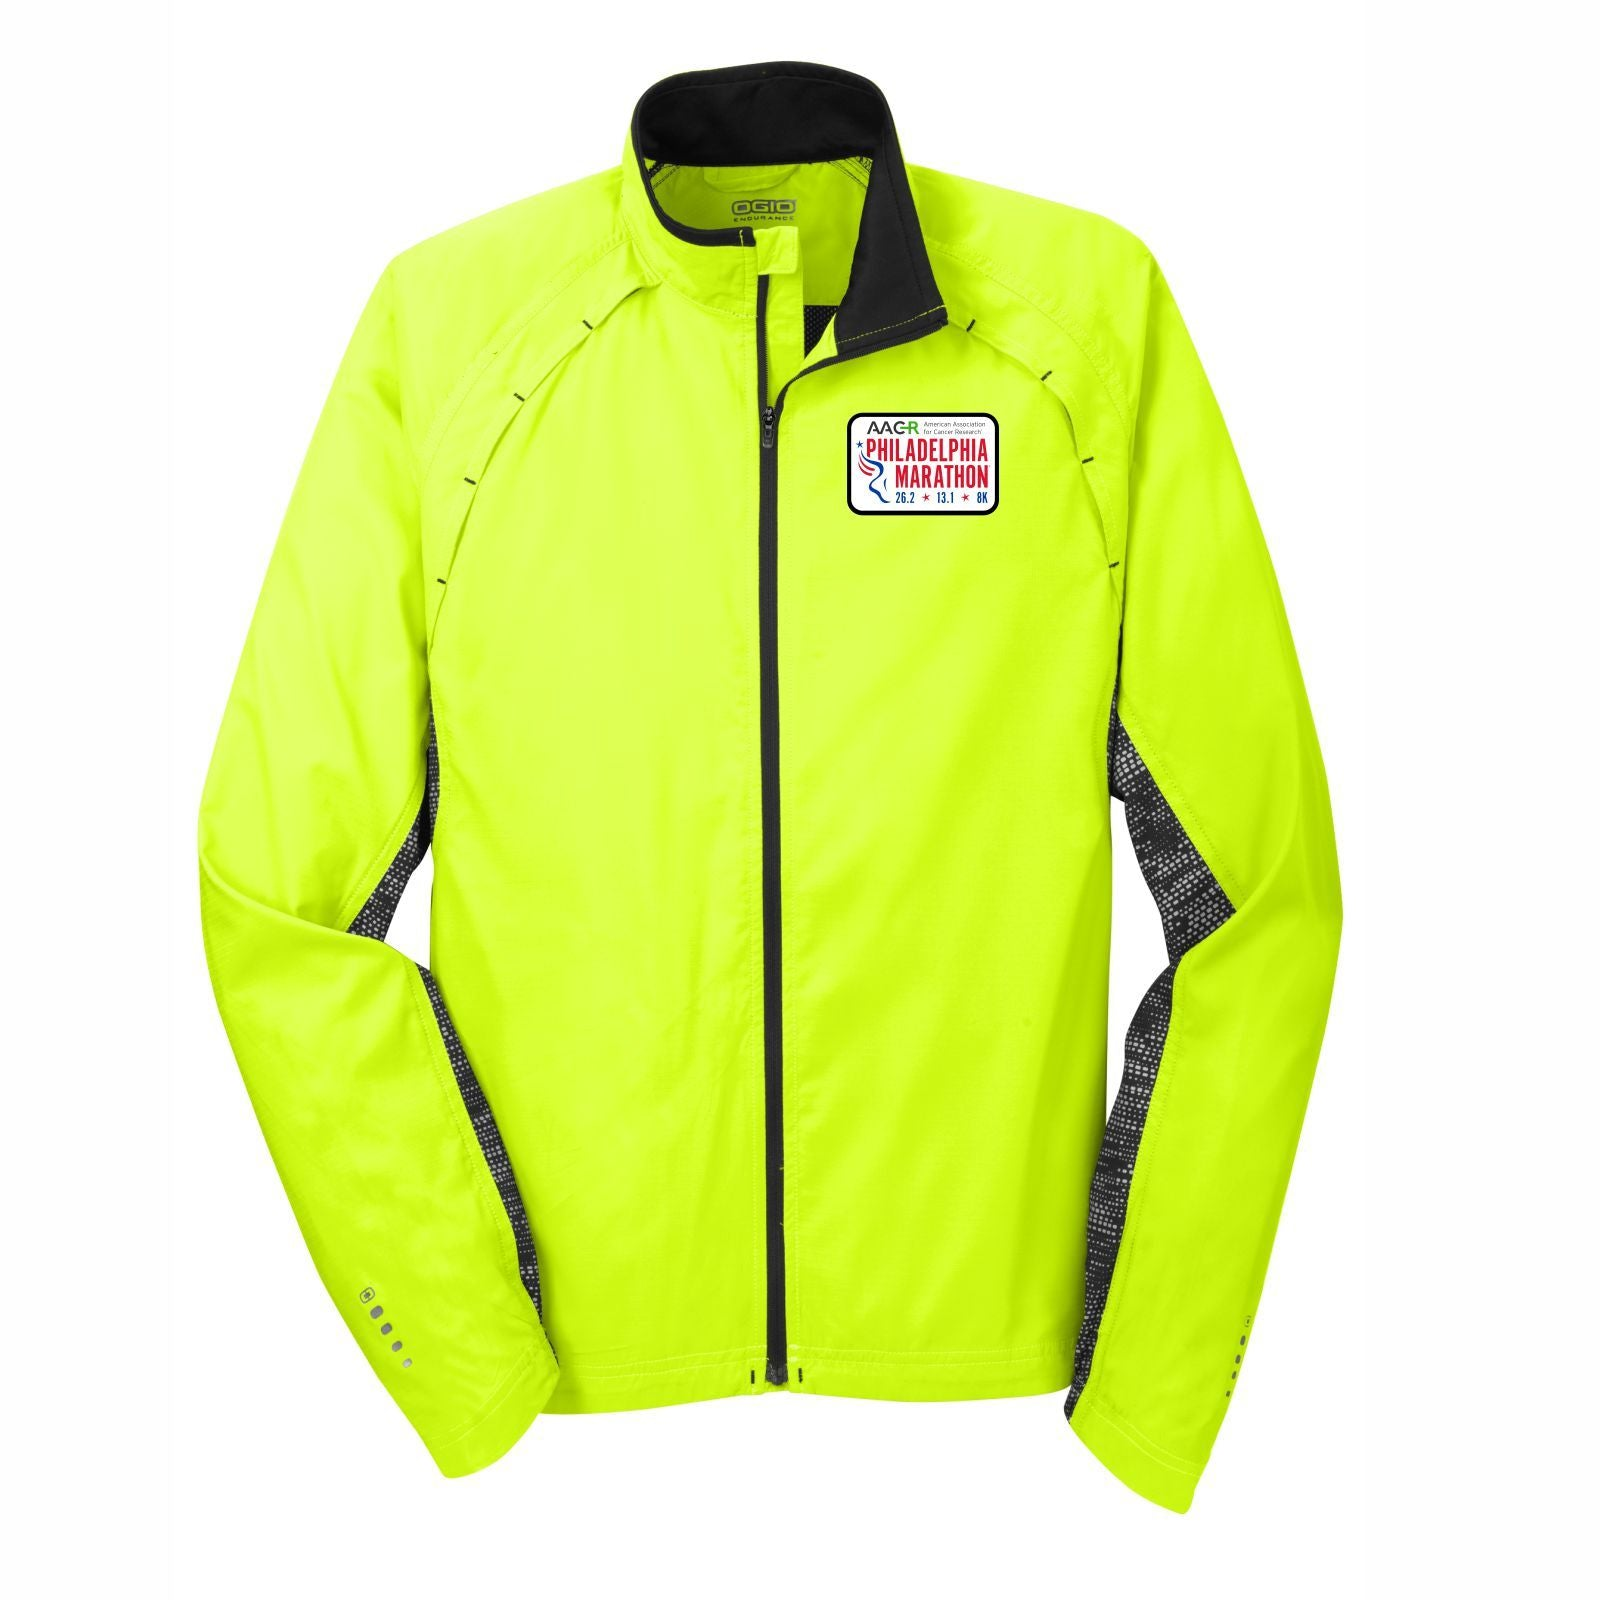 AACR Philadelphia Marathon 'Left Chest Embroidered' Patch design Men's Reflective Water-Resistant Full Zip Jacket - Pace Yellow / Black Reflective